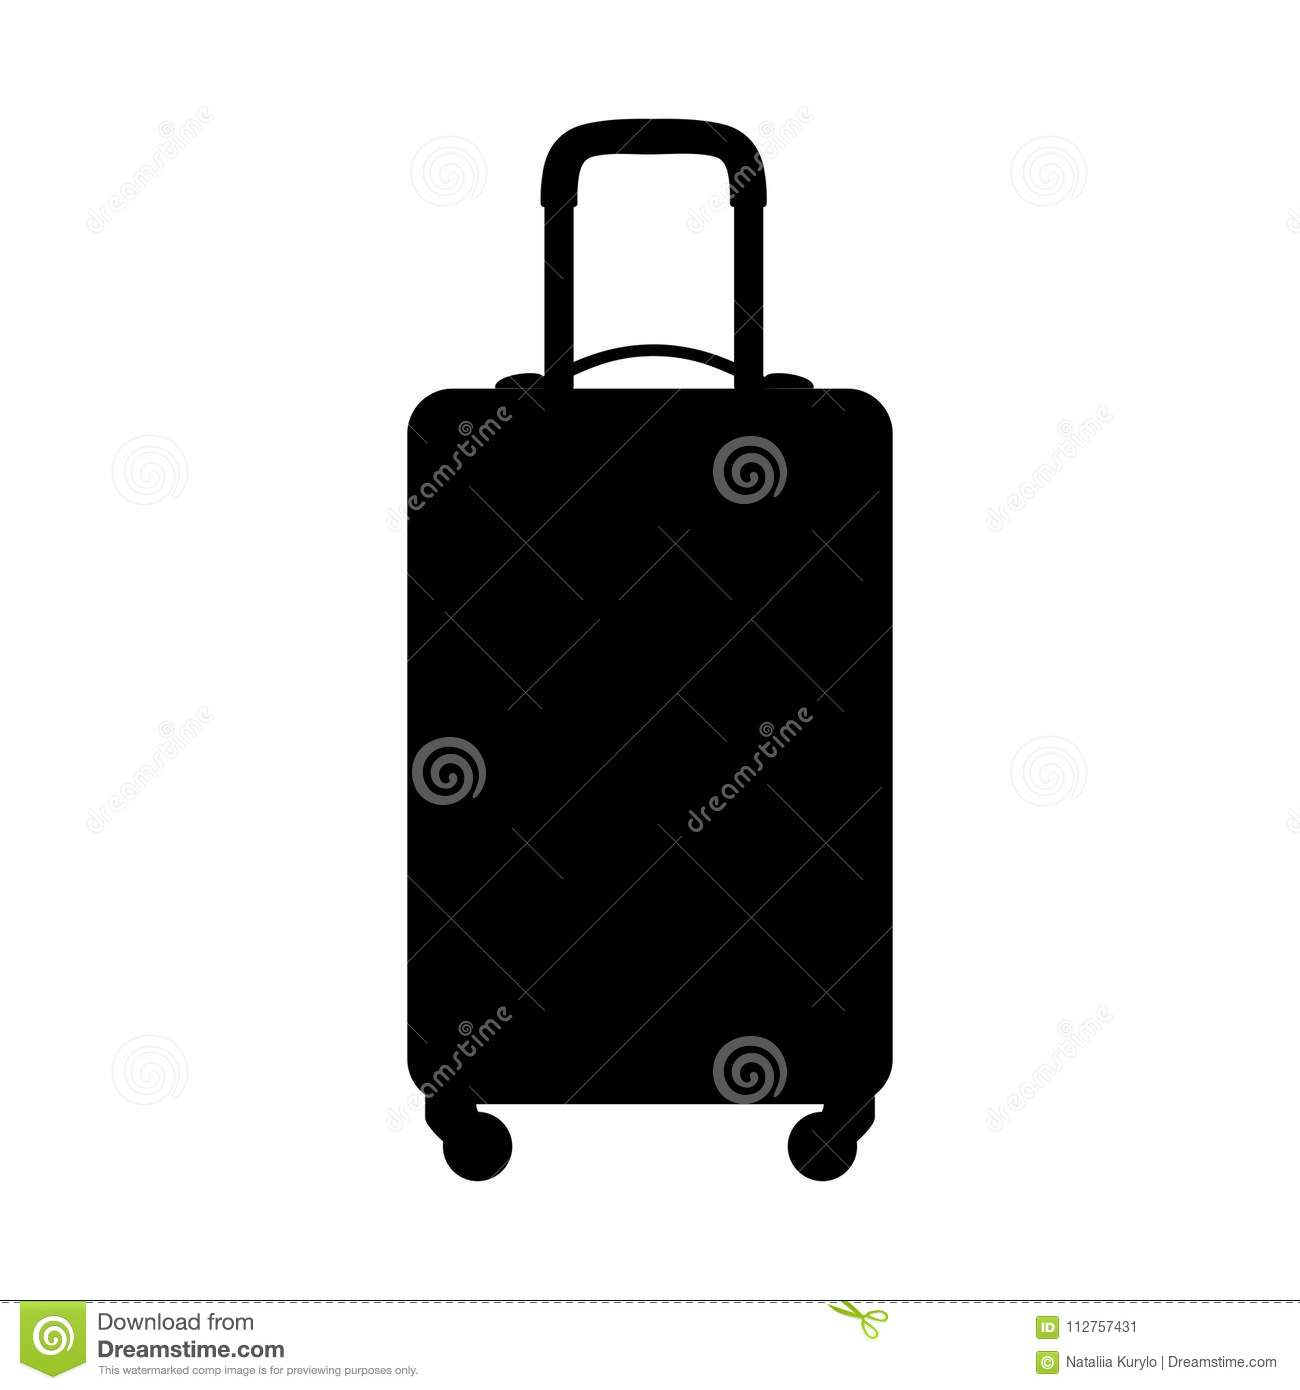 Suitcase silhouette, on white background. Vector icon.